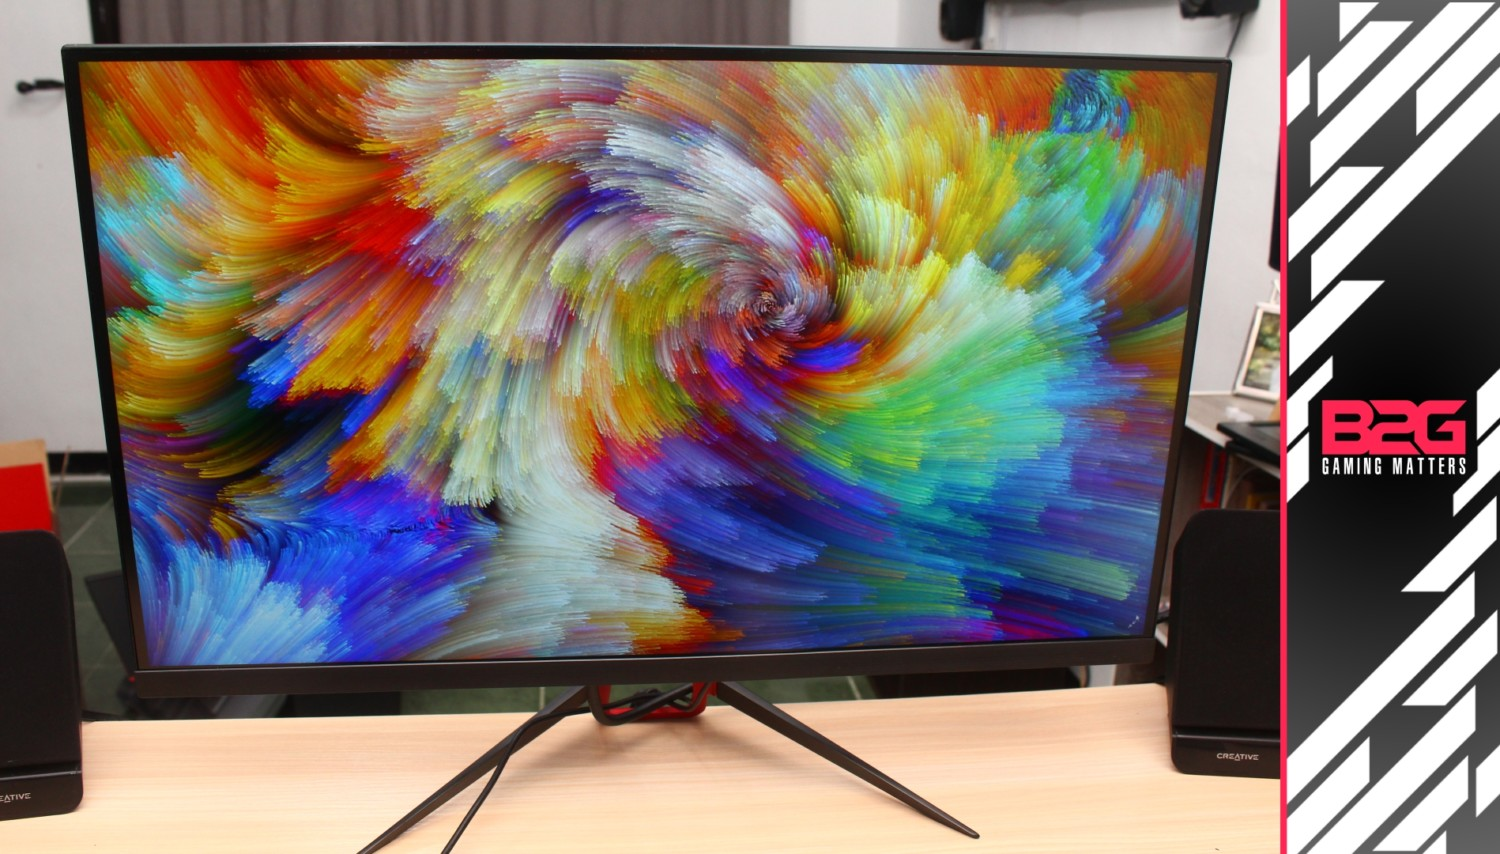 Review - BEZEL 27MD845 FreeSync Gaming Monitor (27 Inch 144Hz 1440p